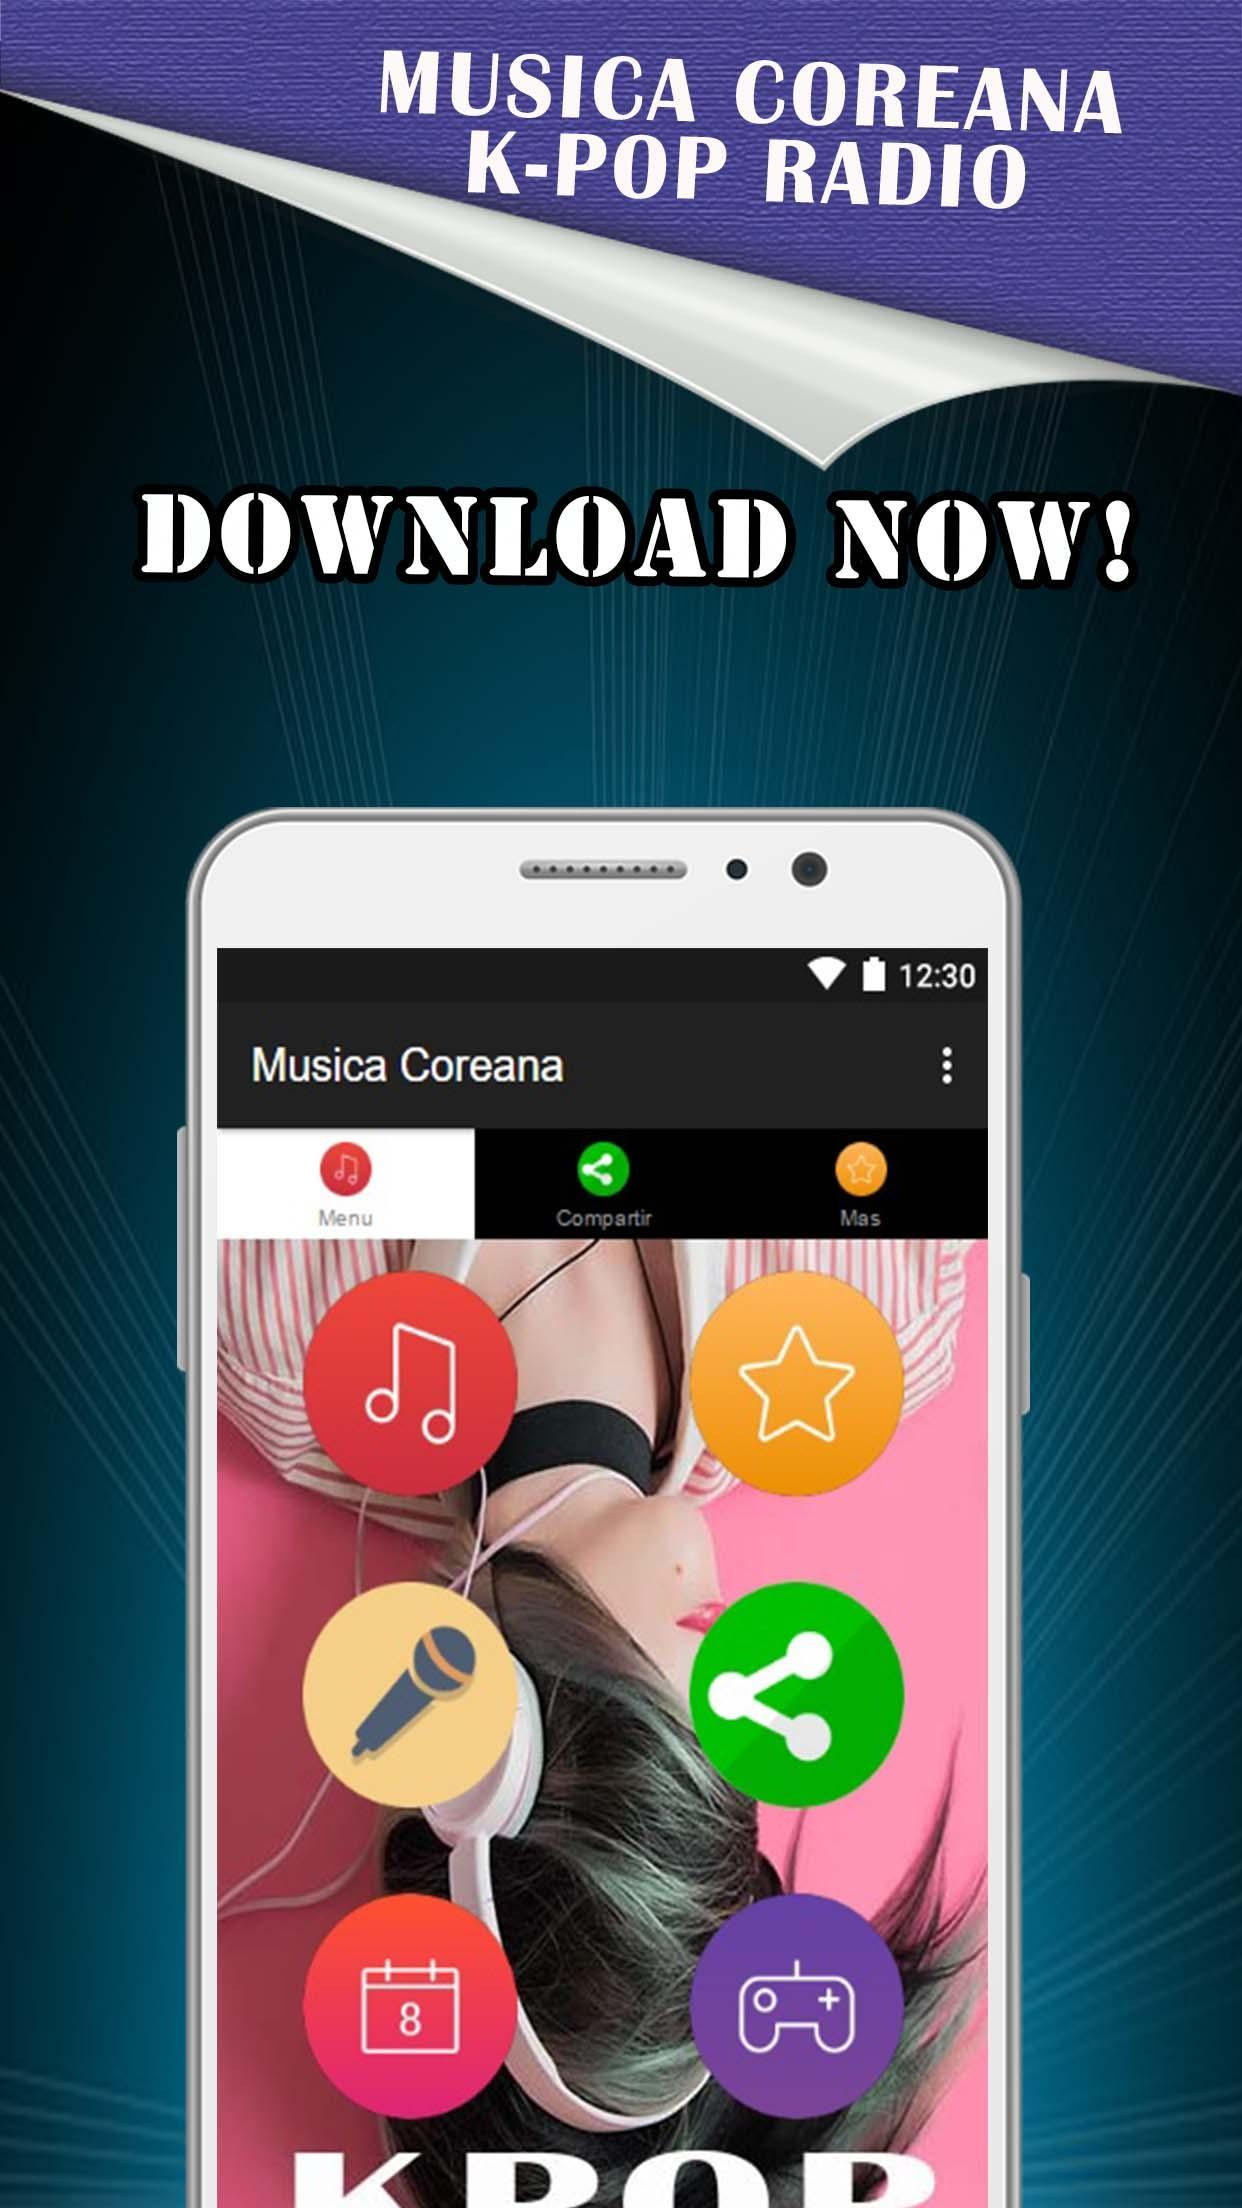 Kpop Music app: Radio Kpop FM for Android - APK Download